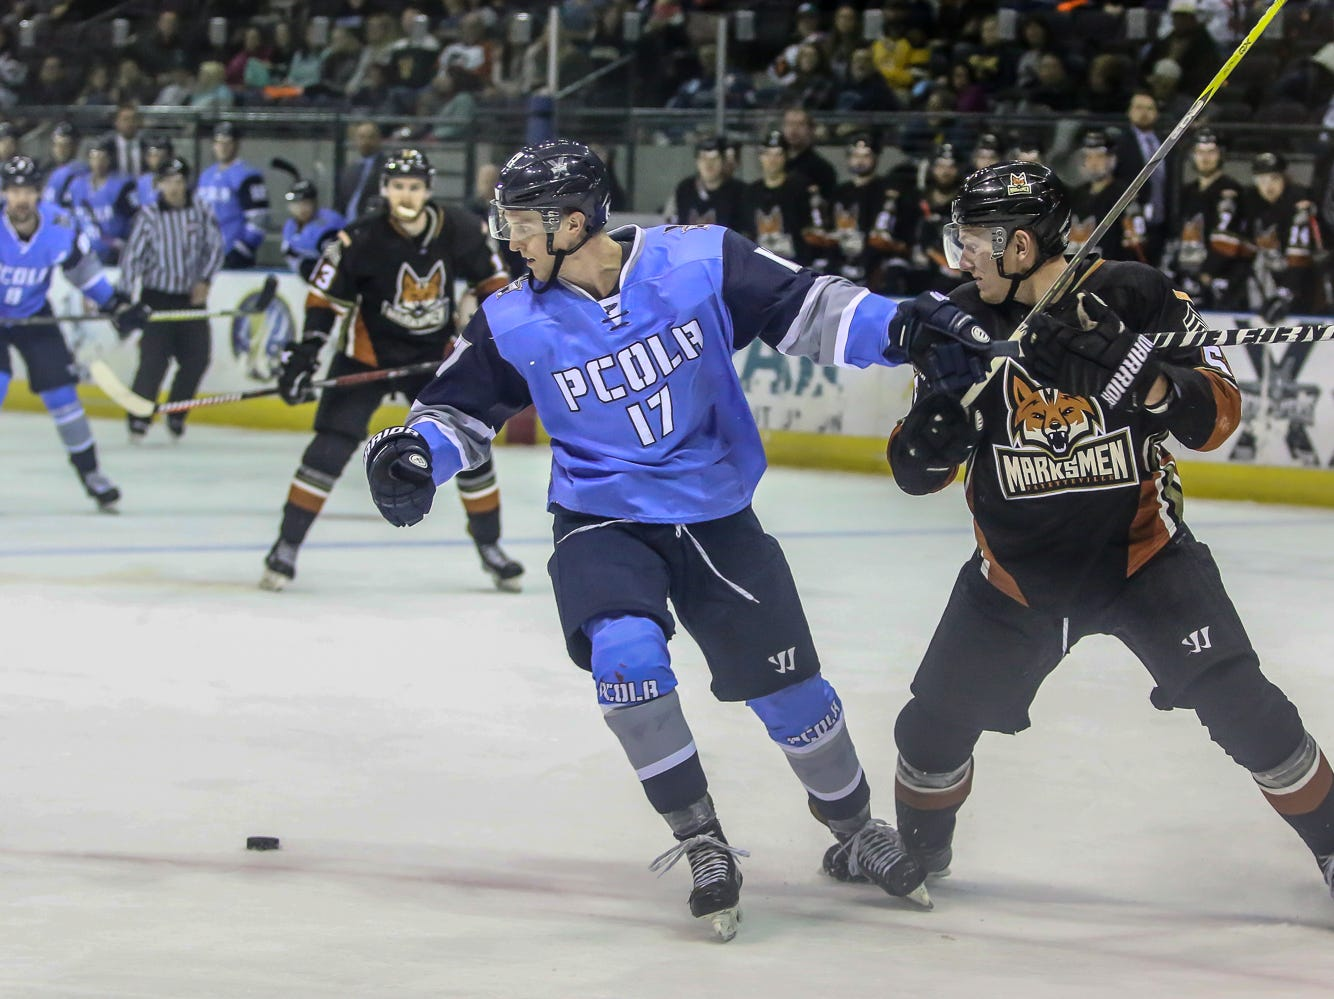 Pensacola's Brantley Sherwood (17) tries to get his stick out from the grip of Fayetteville's Alfred Johansson (5) as they move past the loose puck at the Pensacola Bay Center on Saturday, January 5, 2019.